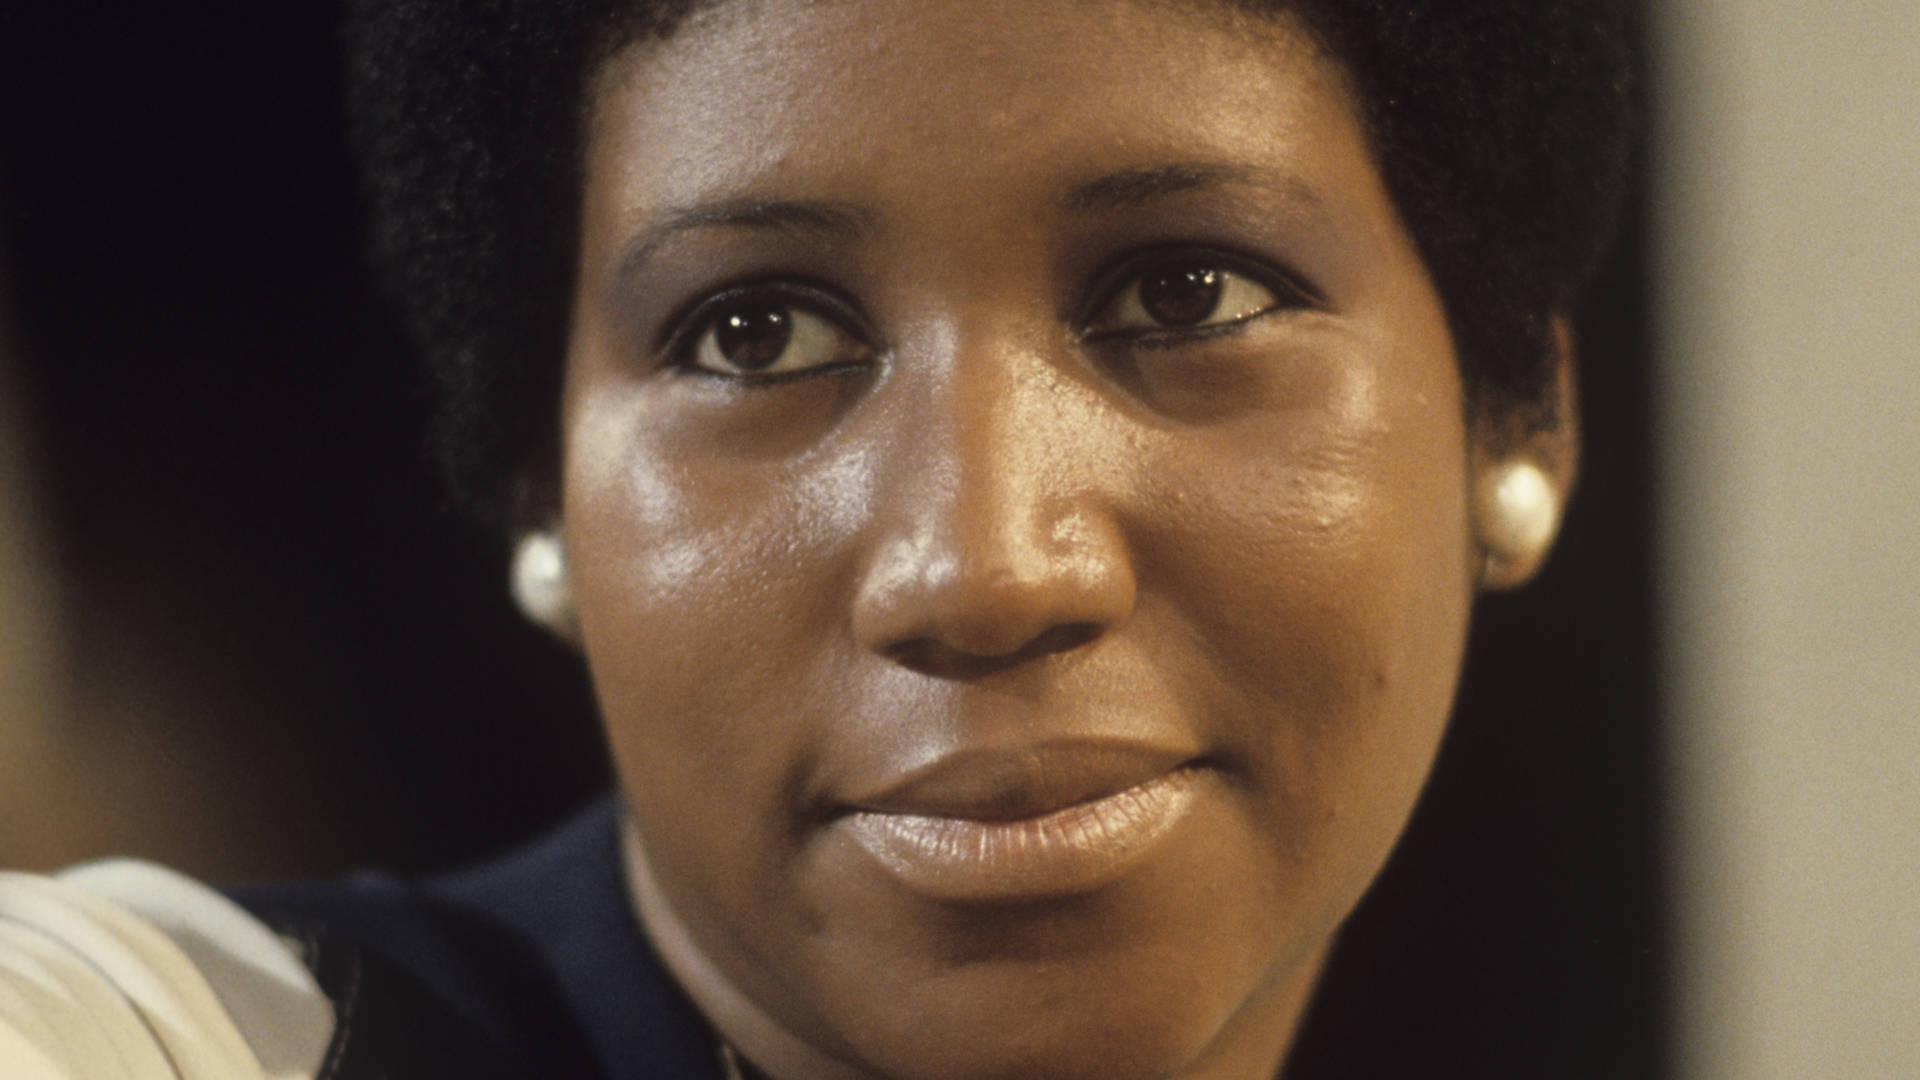 Aretha Franklin, pictured during a television appearance in January 1972, the same month in which the project Amazing Grace was recorded. ABC Photo Archives/ABC via Getty Images